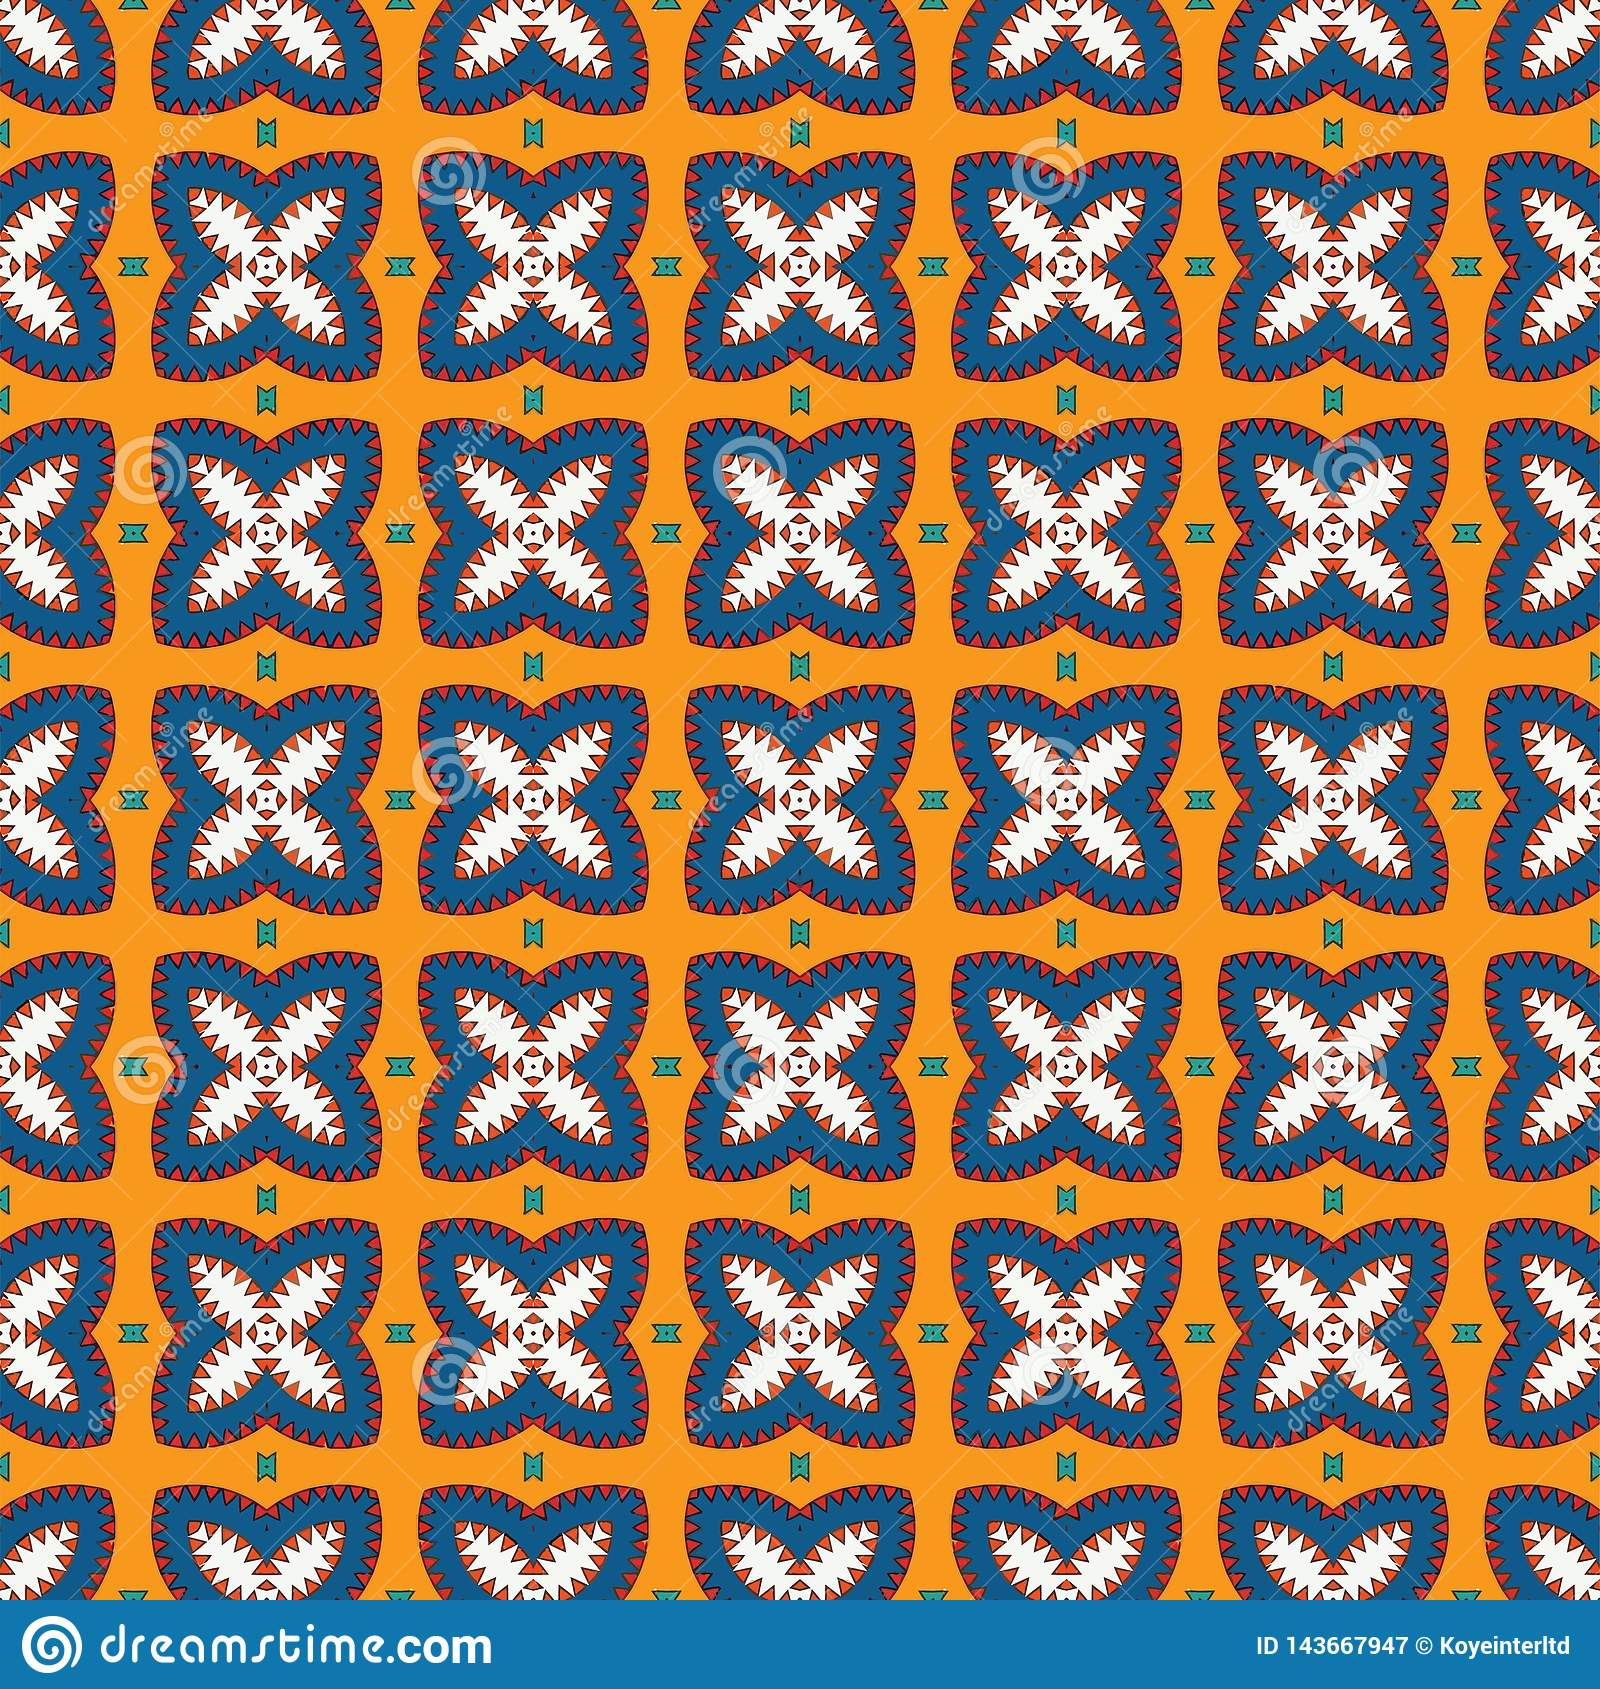 Ankara Fabric For African Dress African Wax Print Cotton Fabric Ankara Fabric Clothing Designs Stock Image Image Of Cotton Clothing 143667947